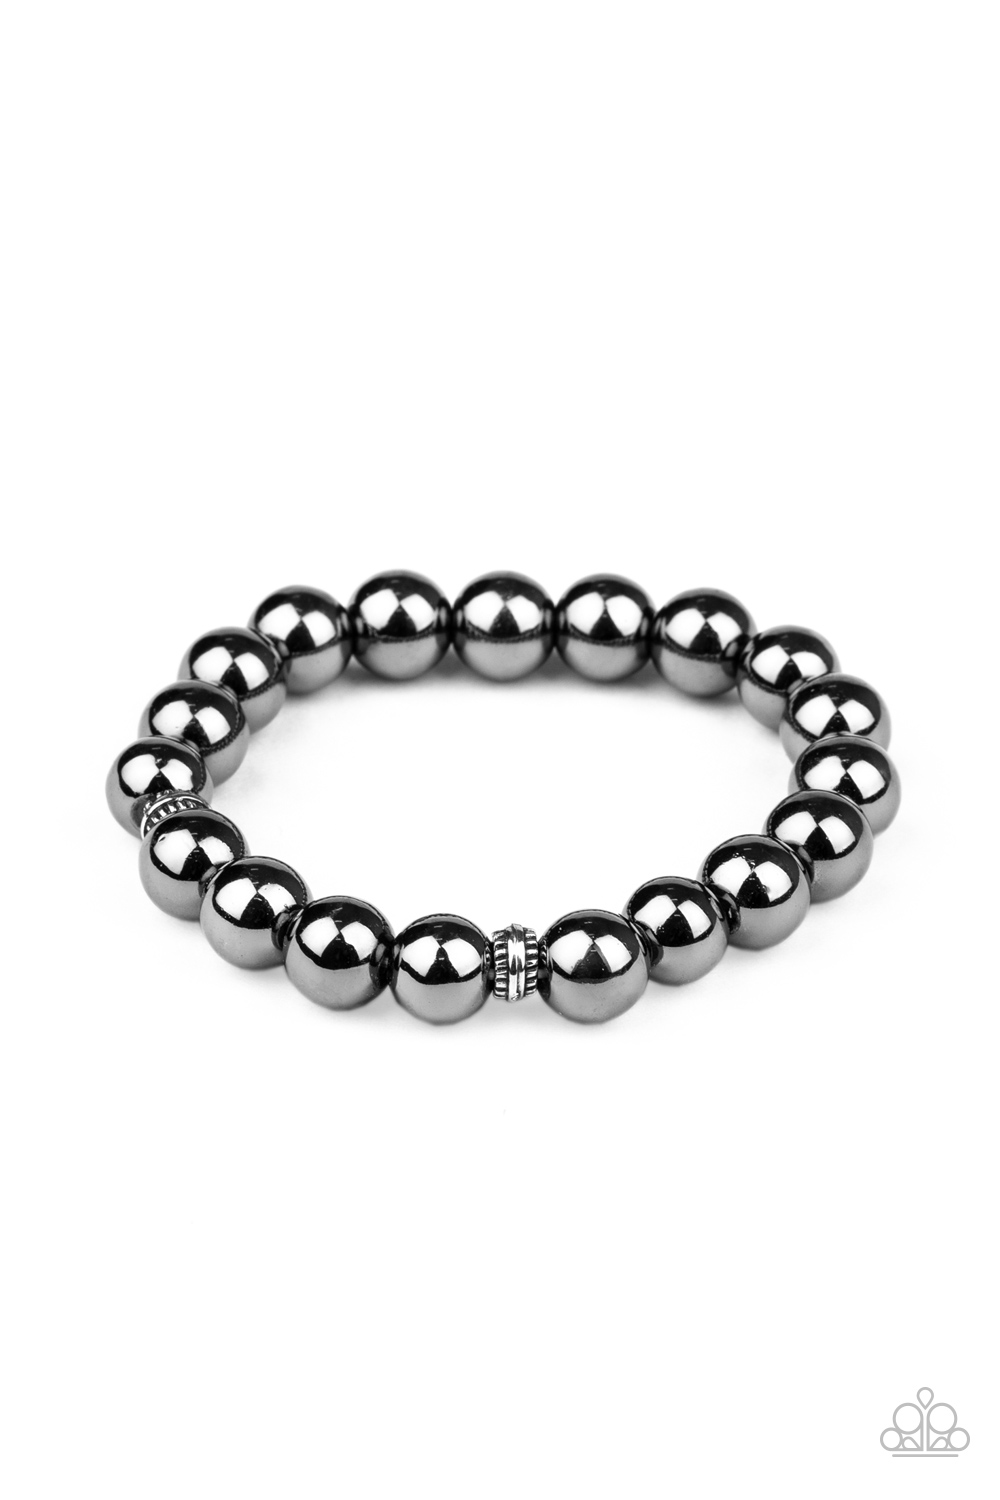 Paparazzi Accessories:  Resilience - Black (2145)